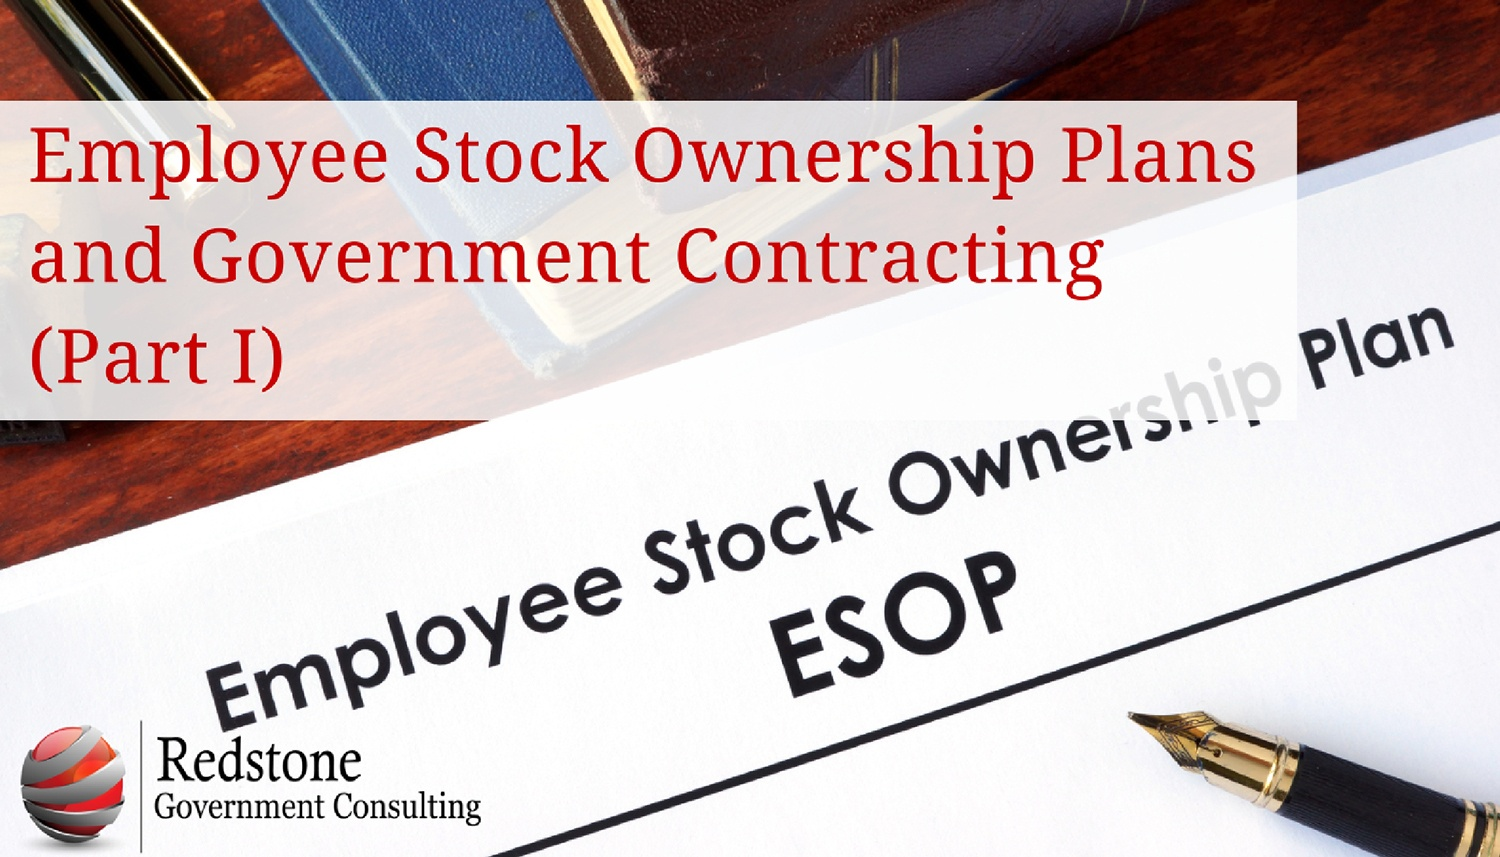 Redstone-ESOPs and Government Contracting (Part I).jpg